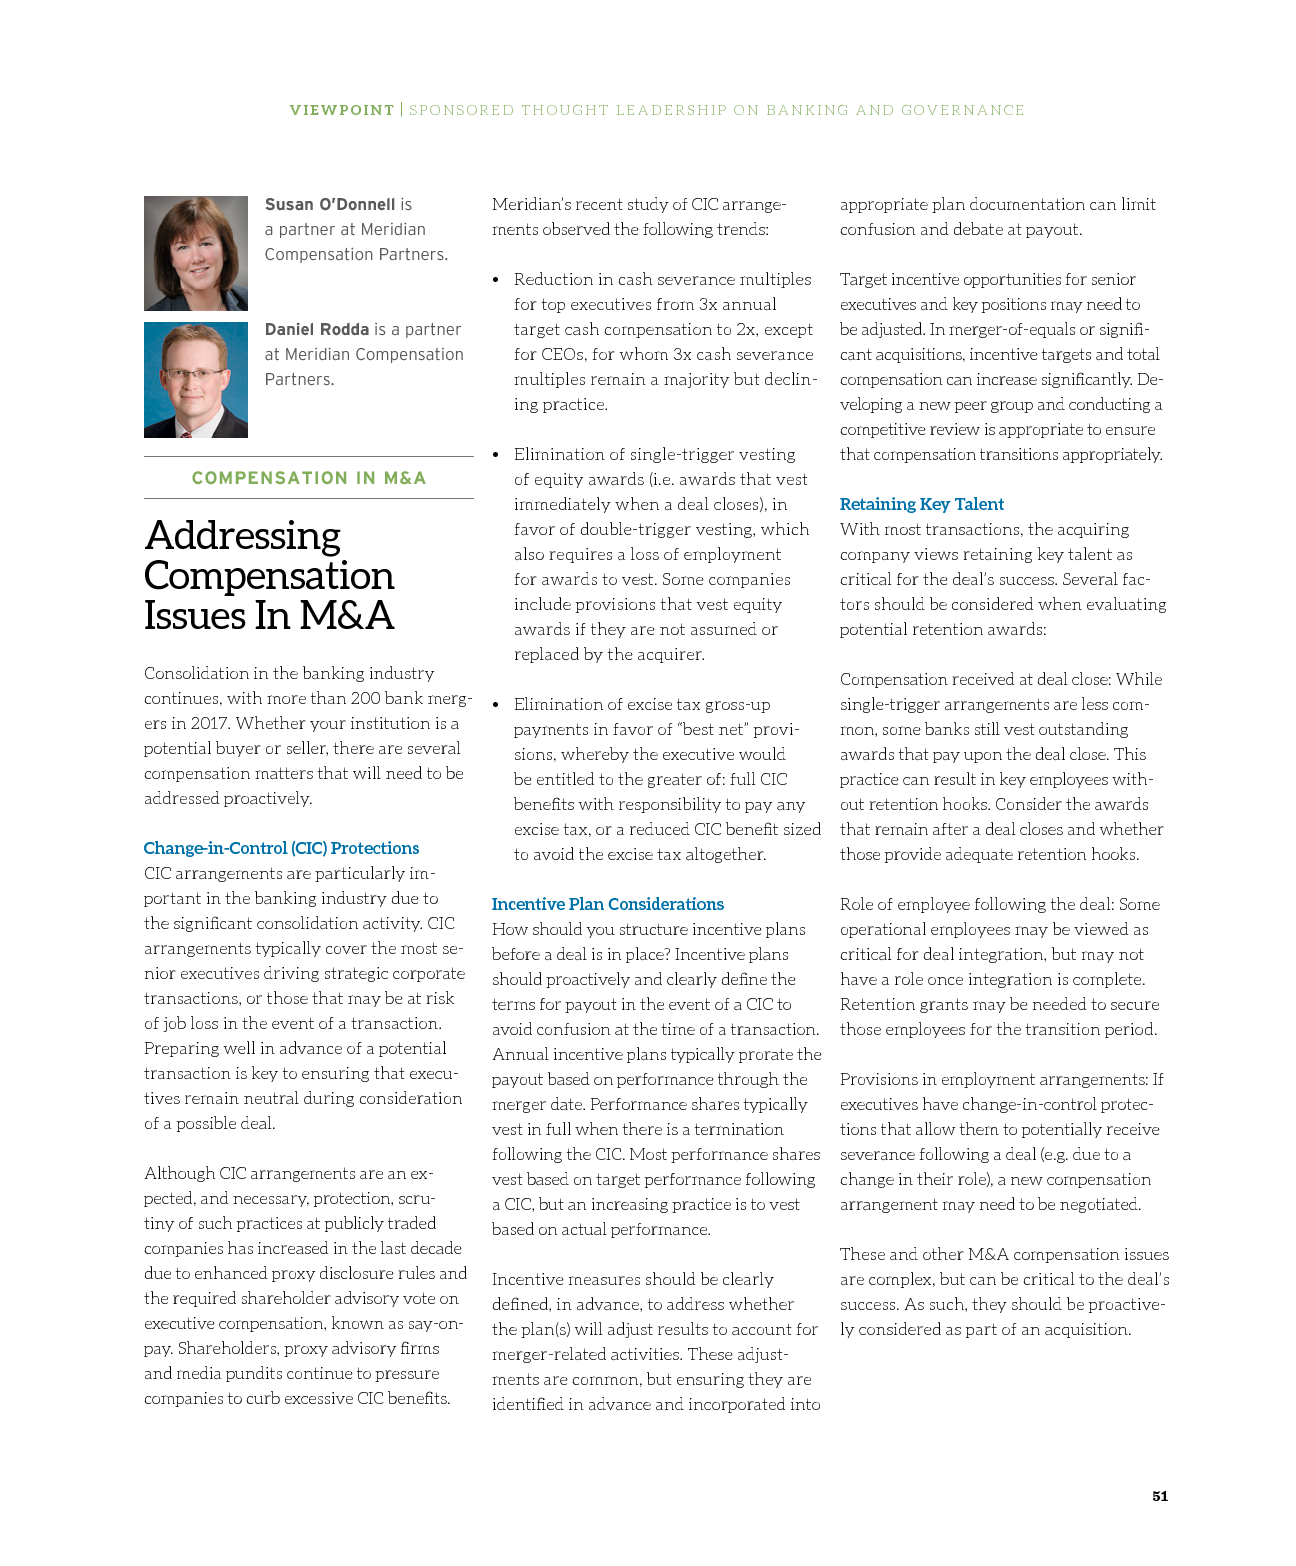 Addressing Compensation Issues In M&A (PDF)